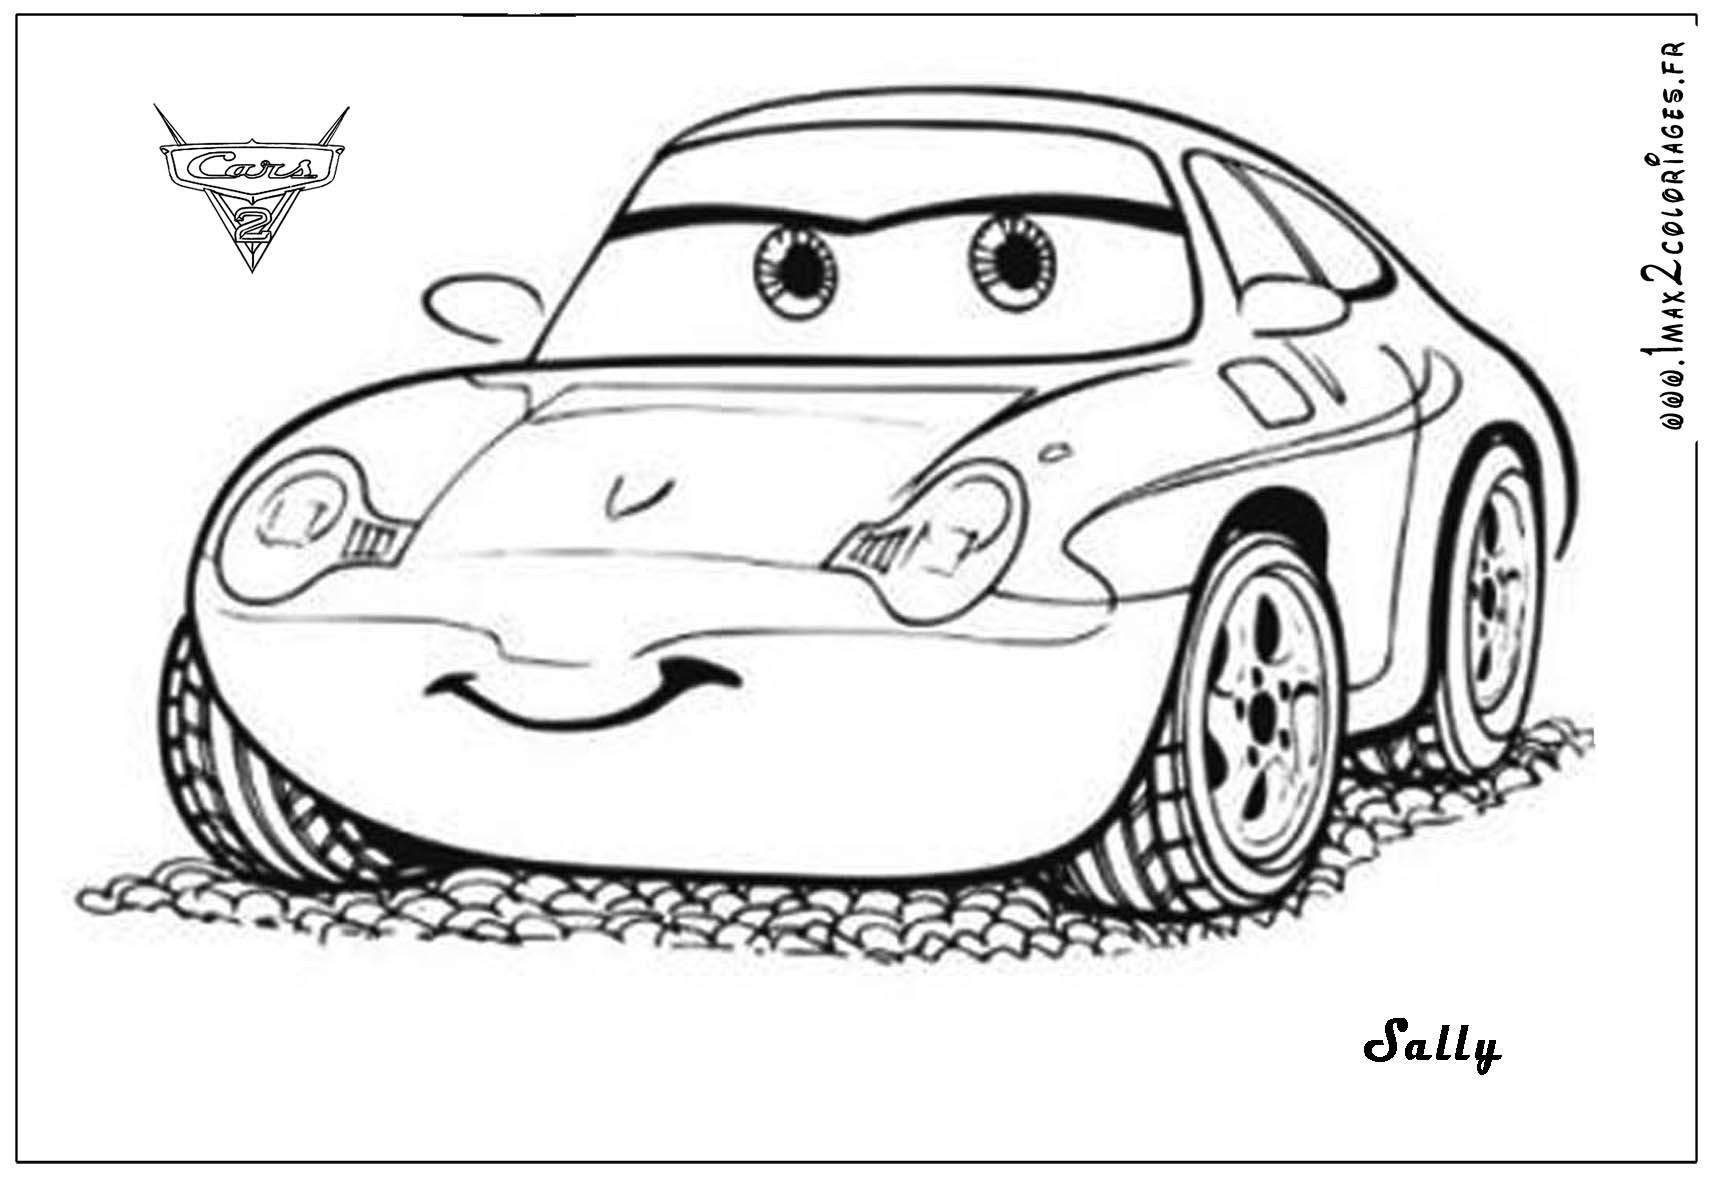 lightning mcqueen colouring pictures to print lightning mcqueen colouring pictures to print mcqueen lightning to pictures colouring print